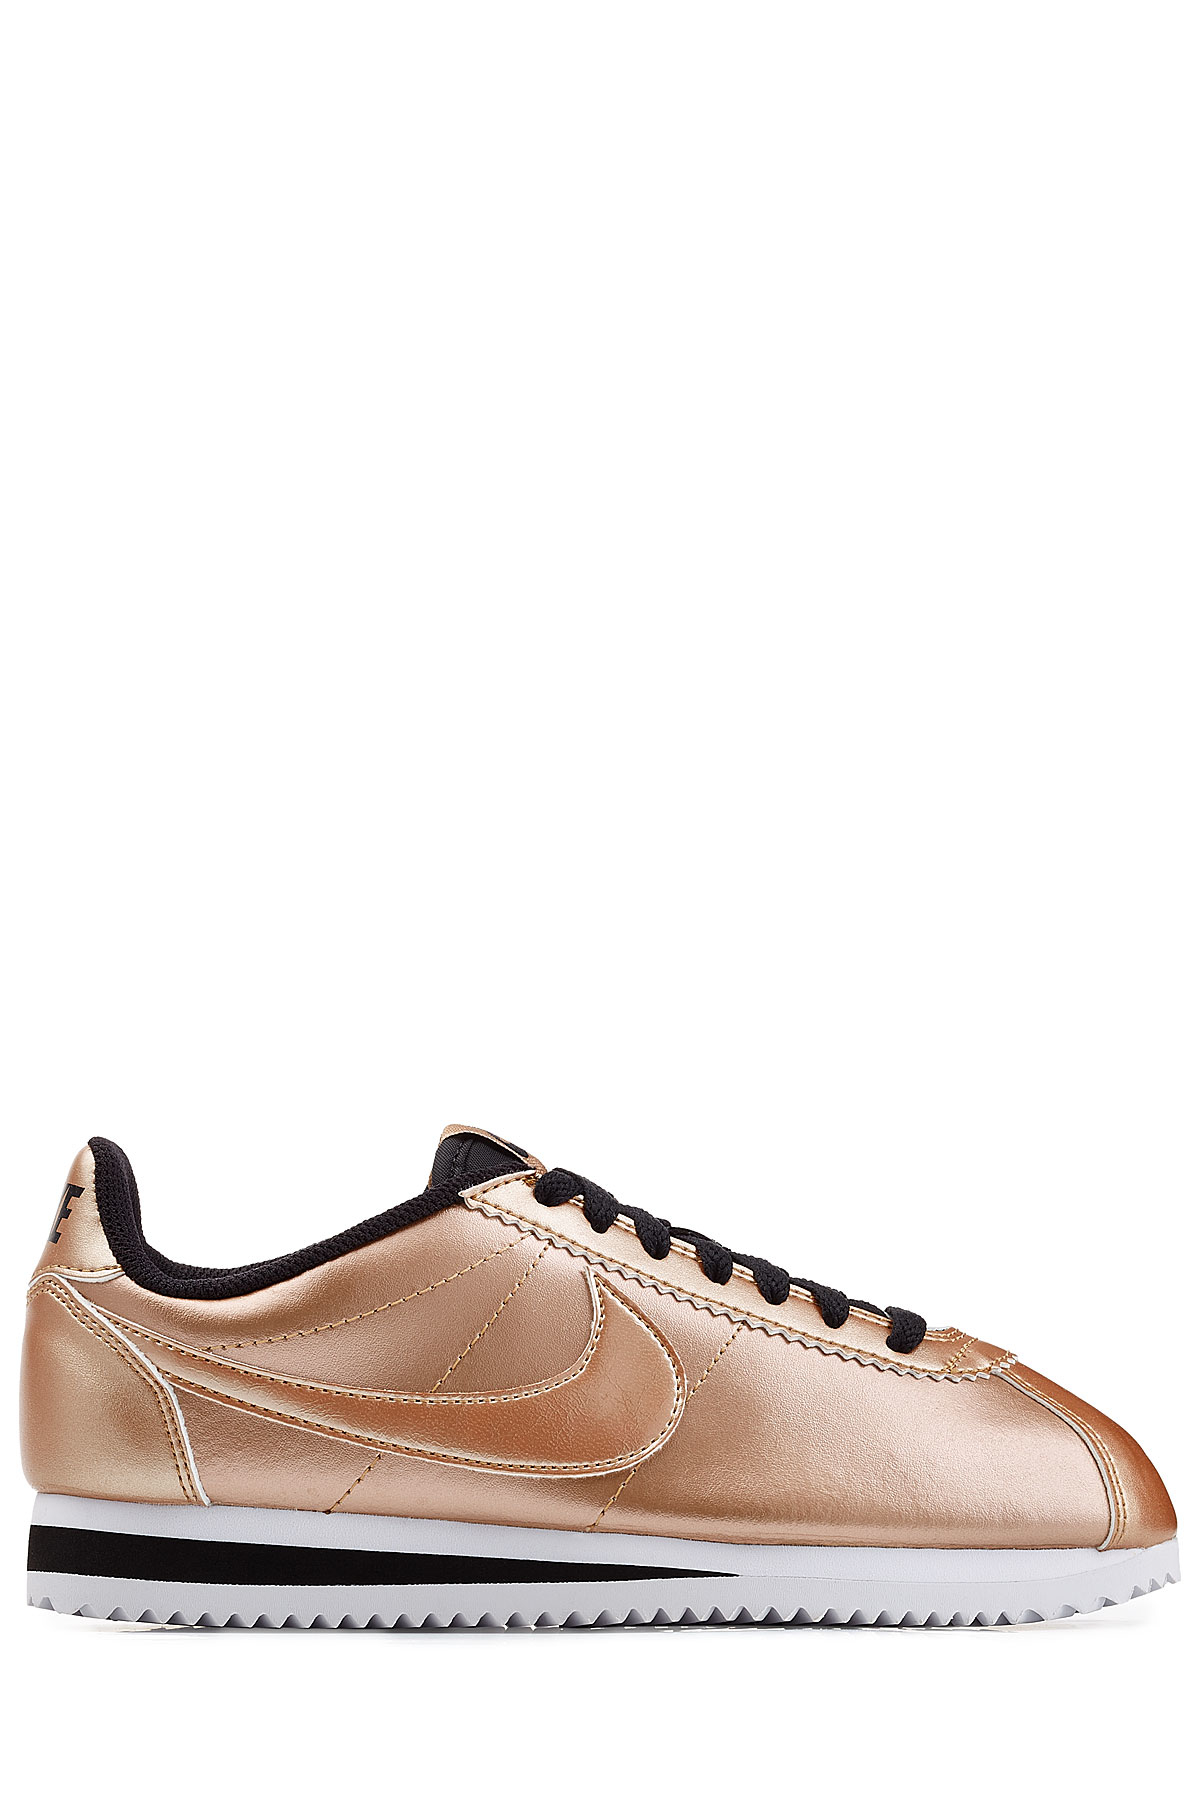 7e36f5565c ... discount lyst nike classic cortez metallic leather sneakers rose in  pink 7a750 397a2